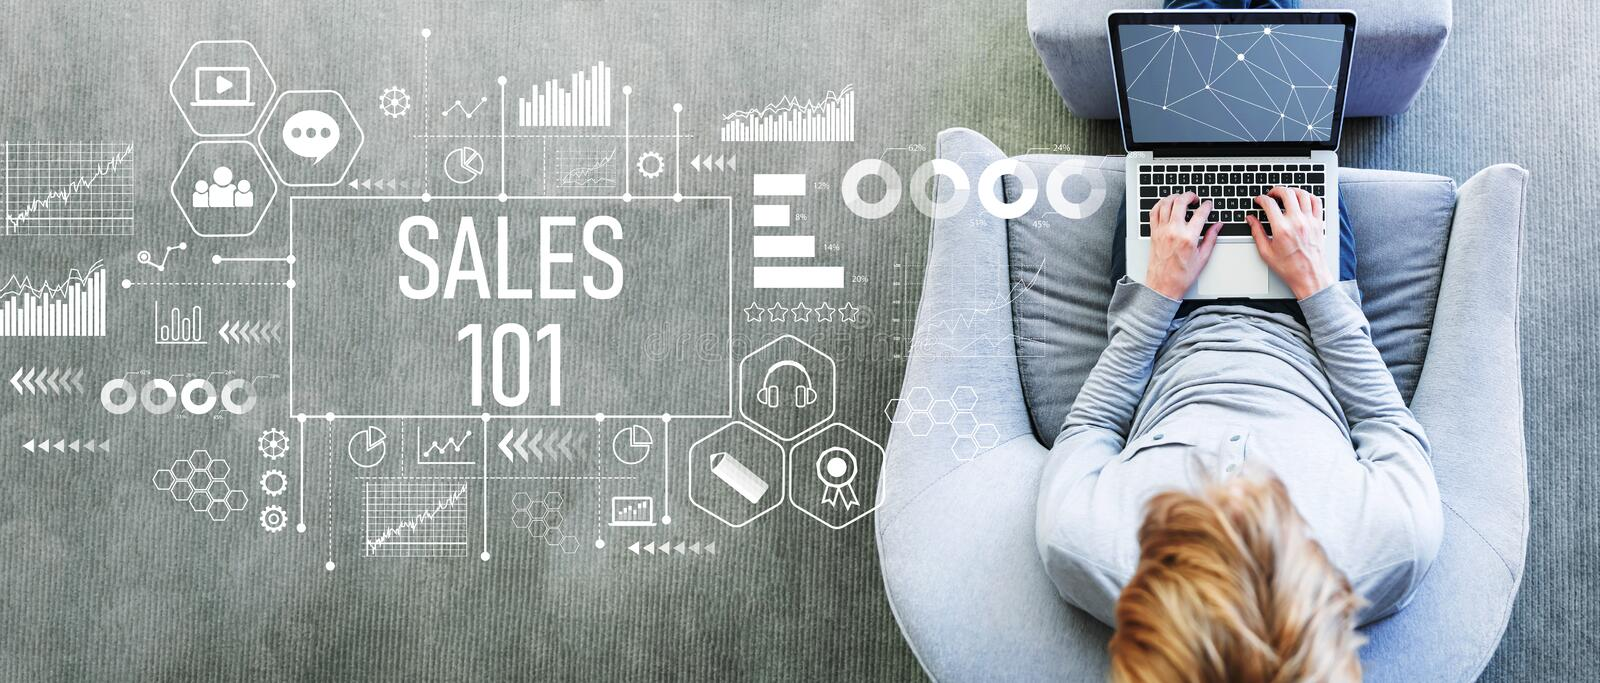 Sales 101 with man using a laptop royalty free stock photo